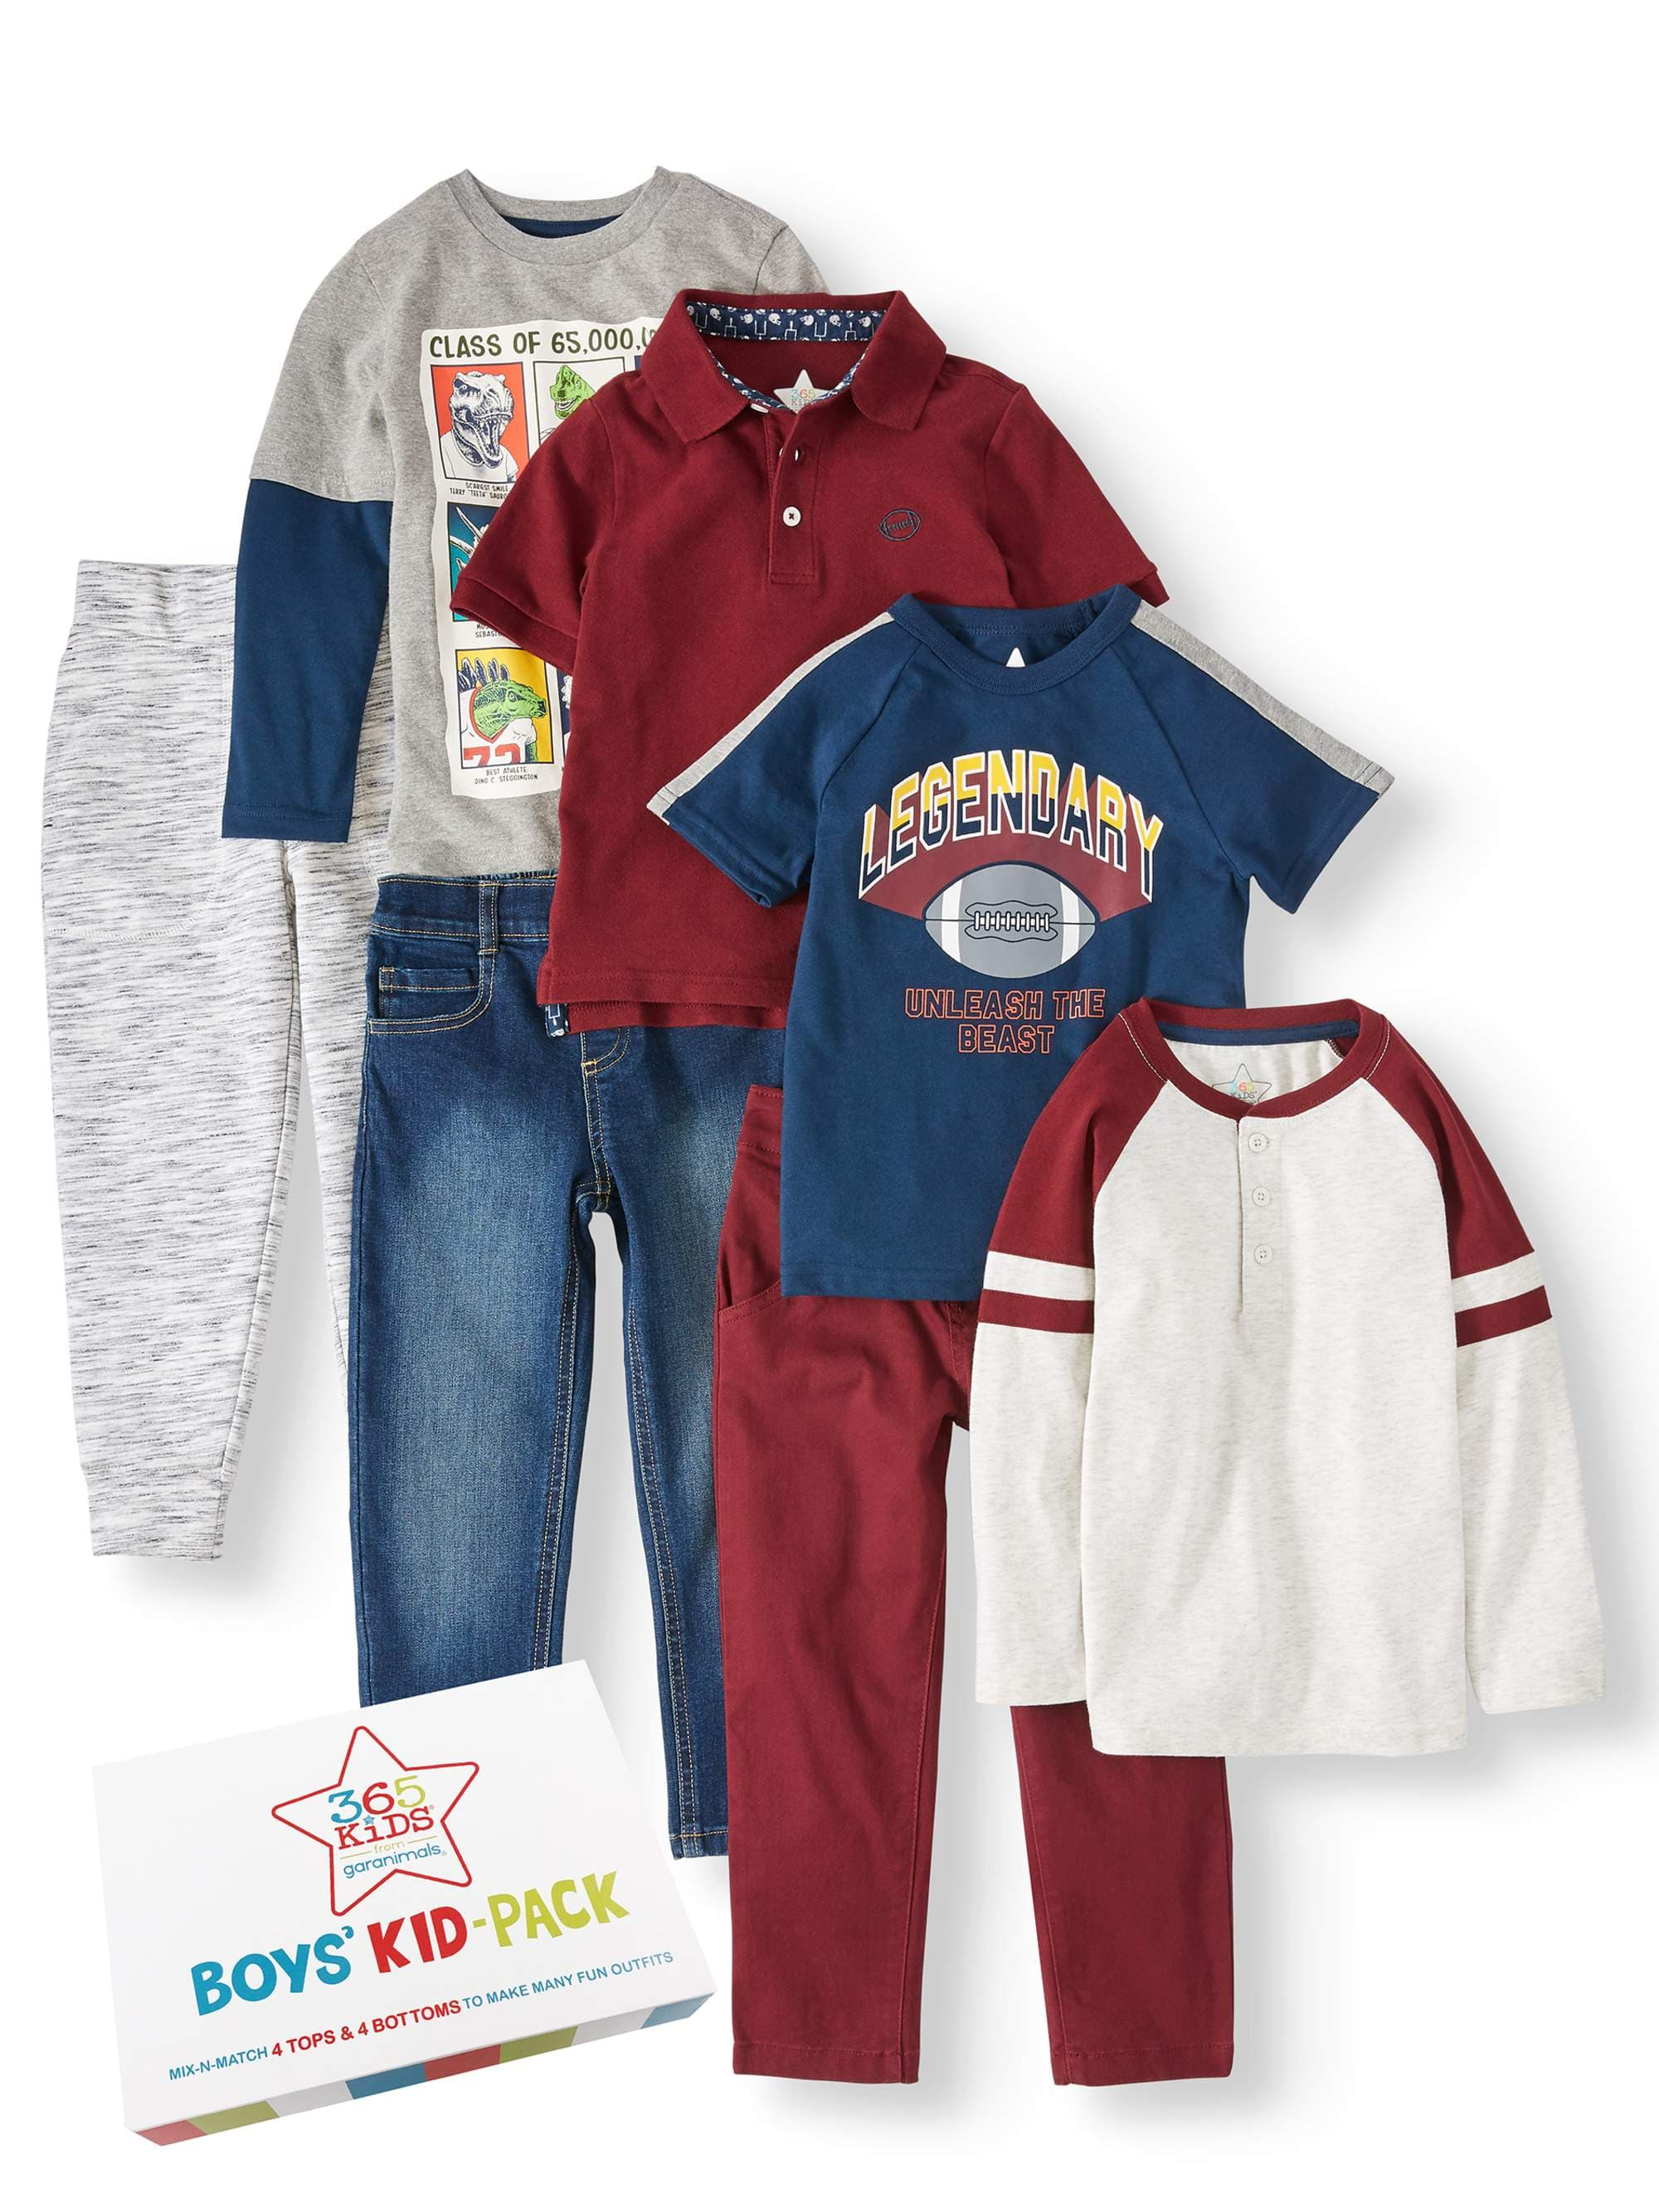 365 Kids from Garanimals Boys 4-10 Kid 7 Piece Outfit set for $26.5